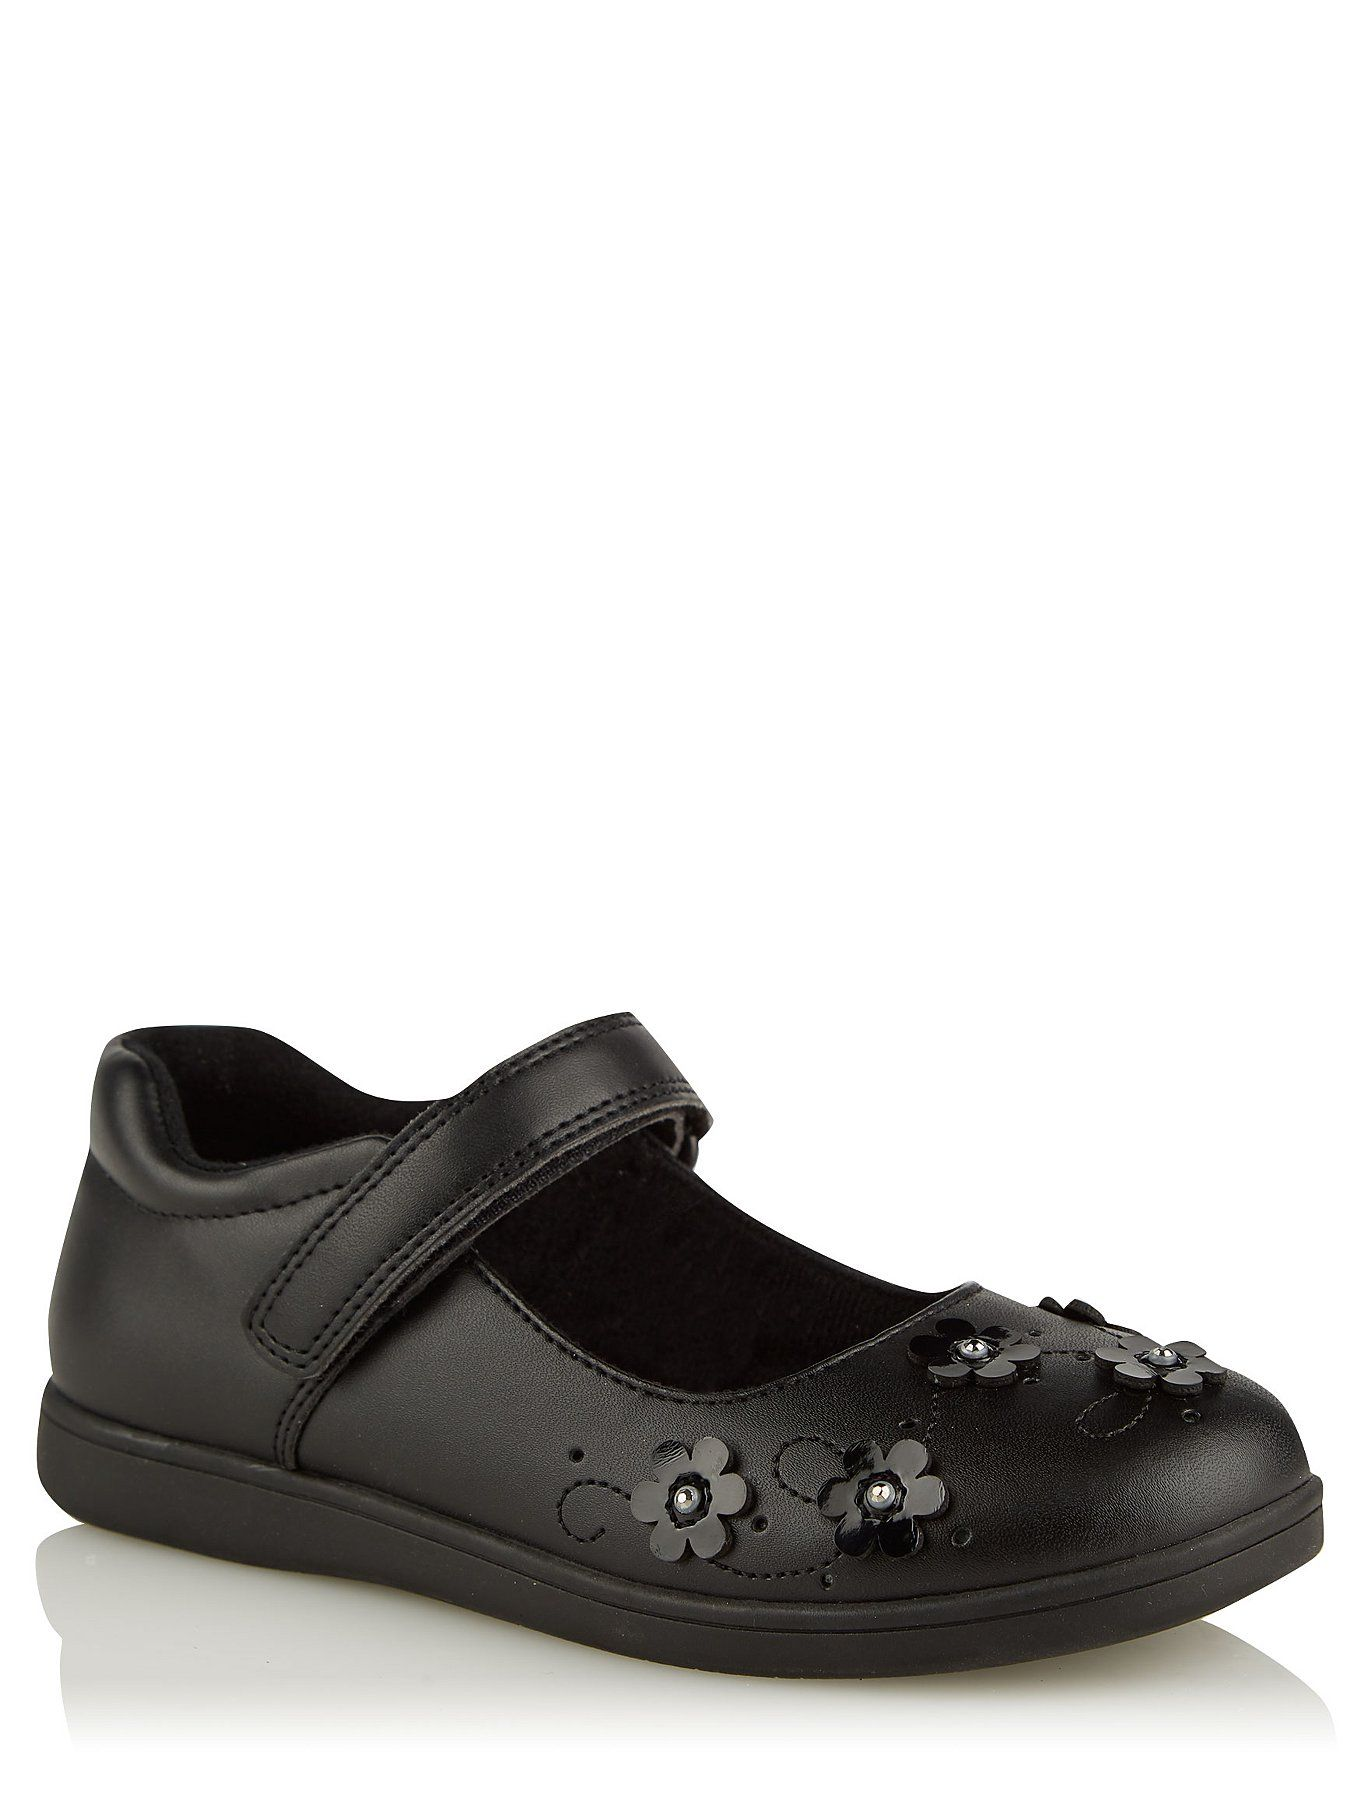 School shoes, Girls shoes online, Kid shoes